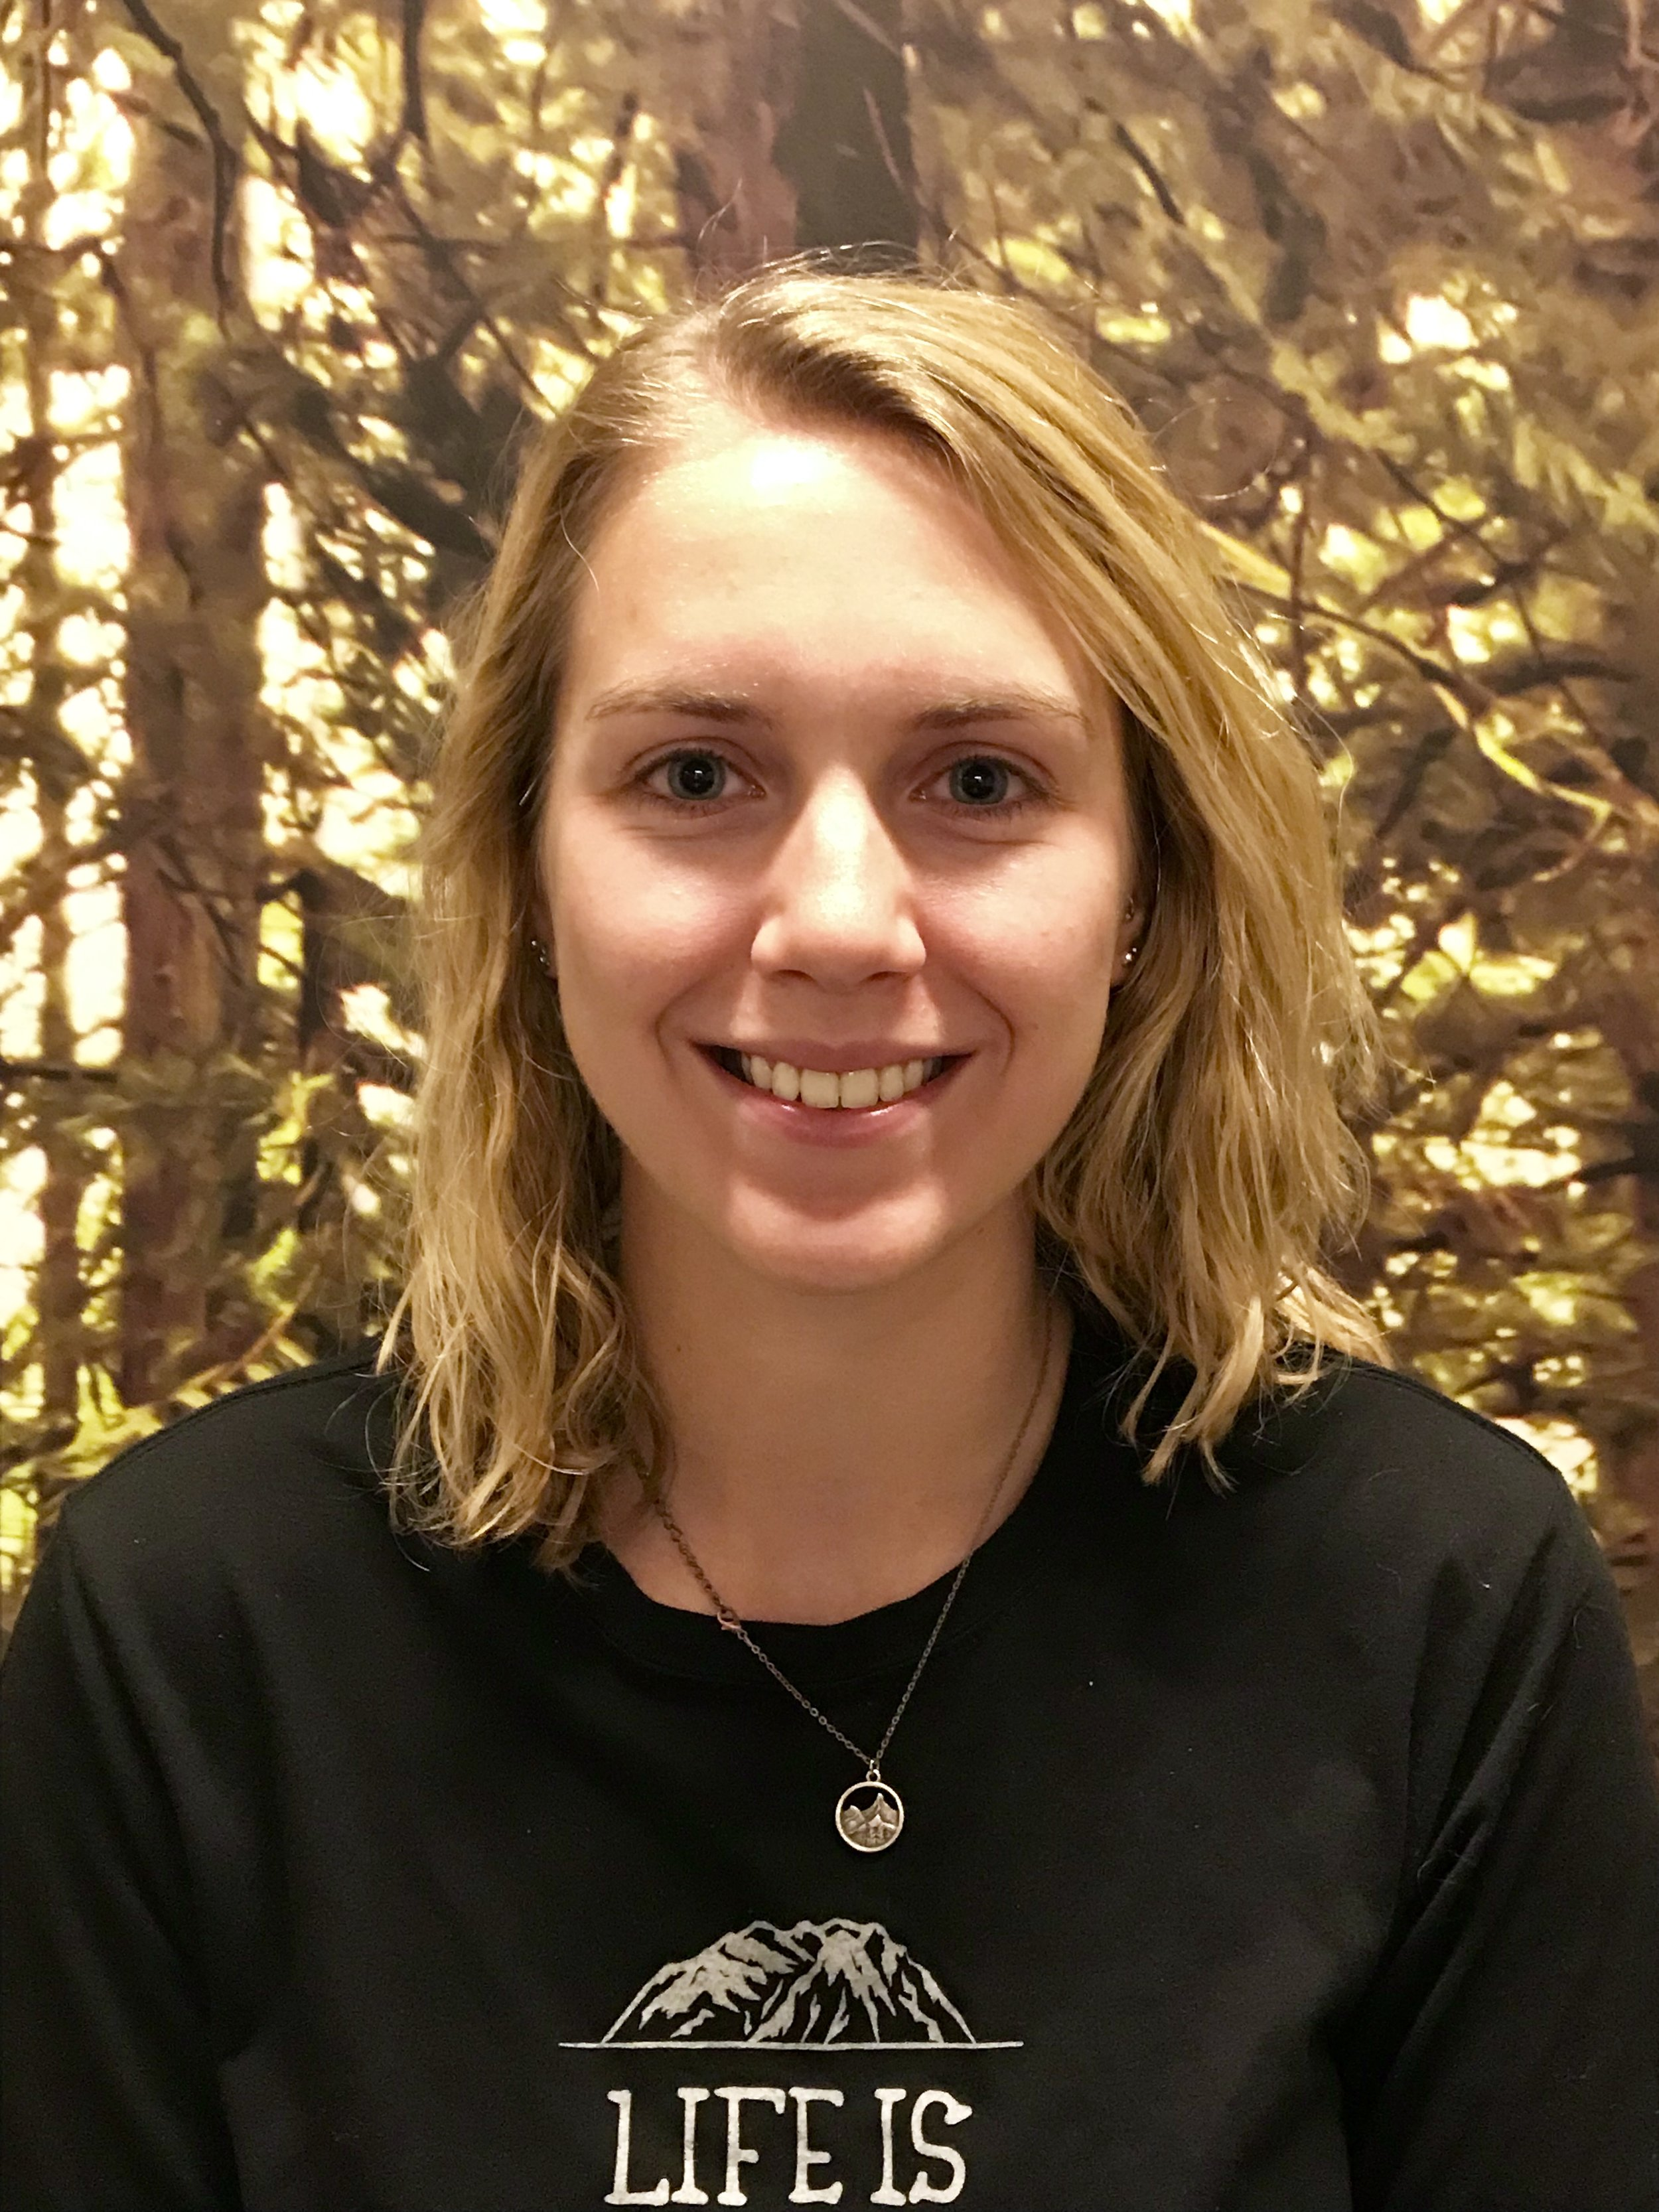 Micayla Beyer Graduate Assistant   Micayla's main priorities are to aid in account management during our peak sales season and ensure all leaders, teams, and individuals are properly welcomed into the Choose a Challenge family.  Micayla was born and raised on Long Island in New York. She loves the outdoors, staying active and sharing her experiences with others. While studying for a dual degree in Physics and German at Stony Brook University, she raced for the school's club sailing team, organized philanthropic and fundraising events for other groups, and founded Stony Brook's Choose a Challenge club. Most recently she summited Mt. Kilimanjaro with Choose a Challenge in May 2019.